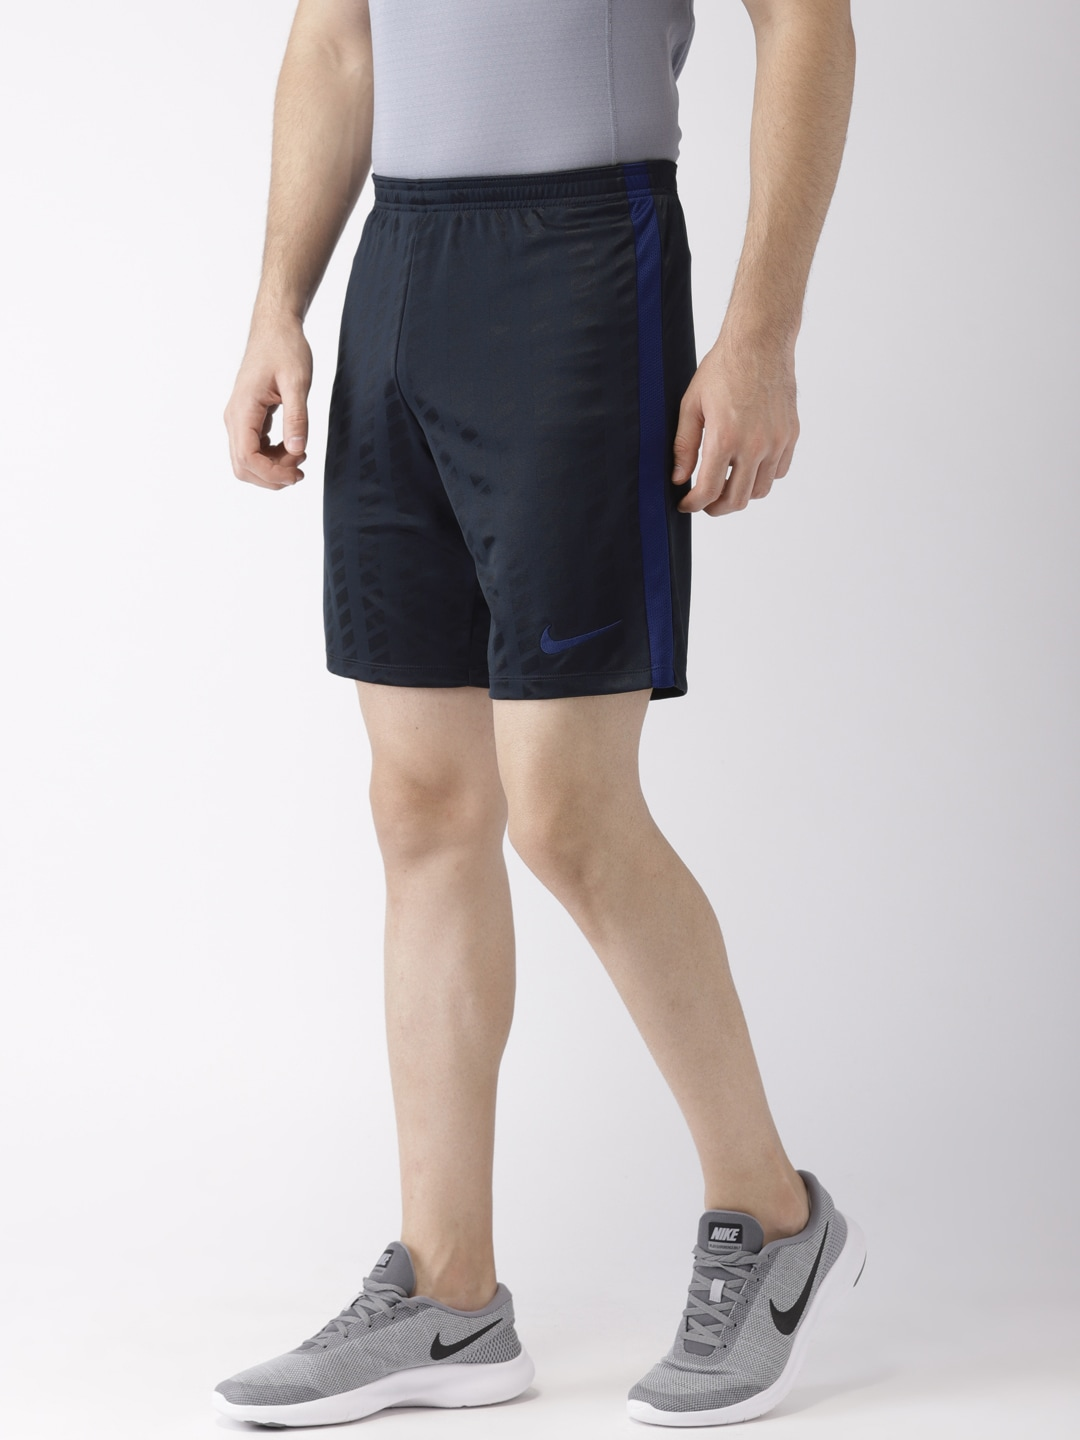 Nike Shorts - Buy Shorts from Nike Online Store   Myntra 9612ce1a3a73